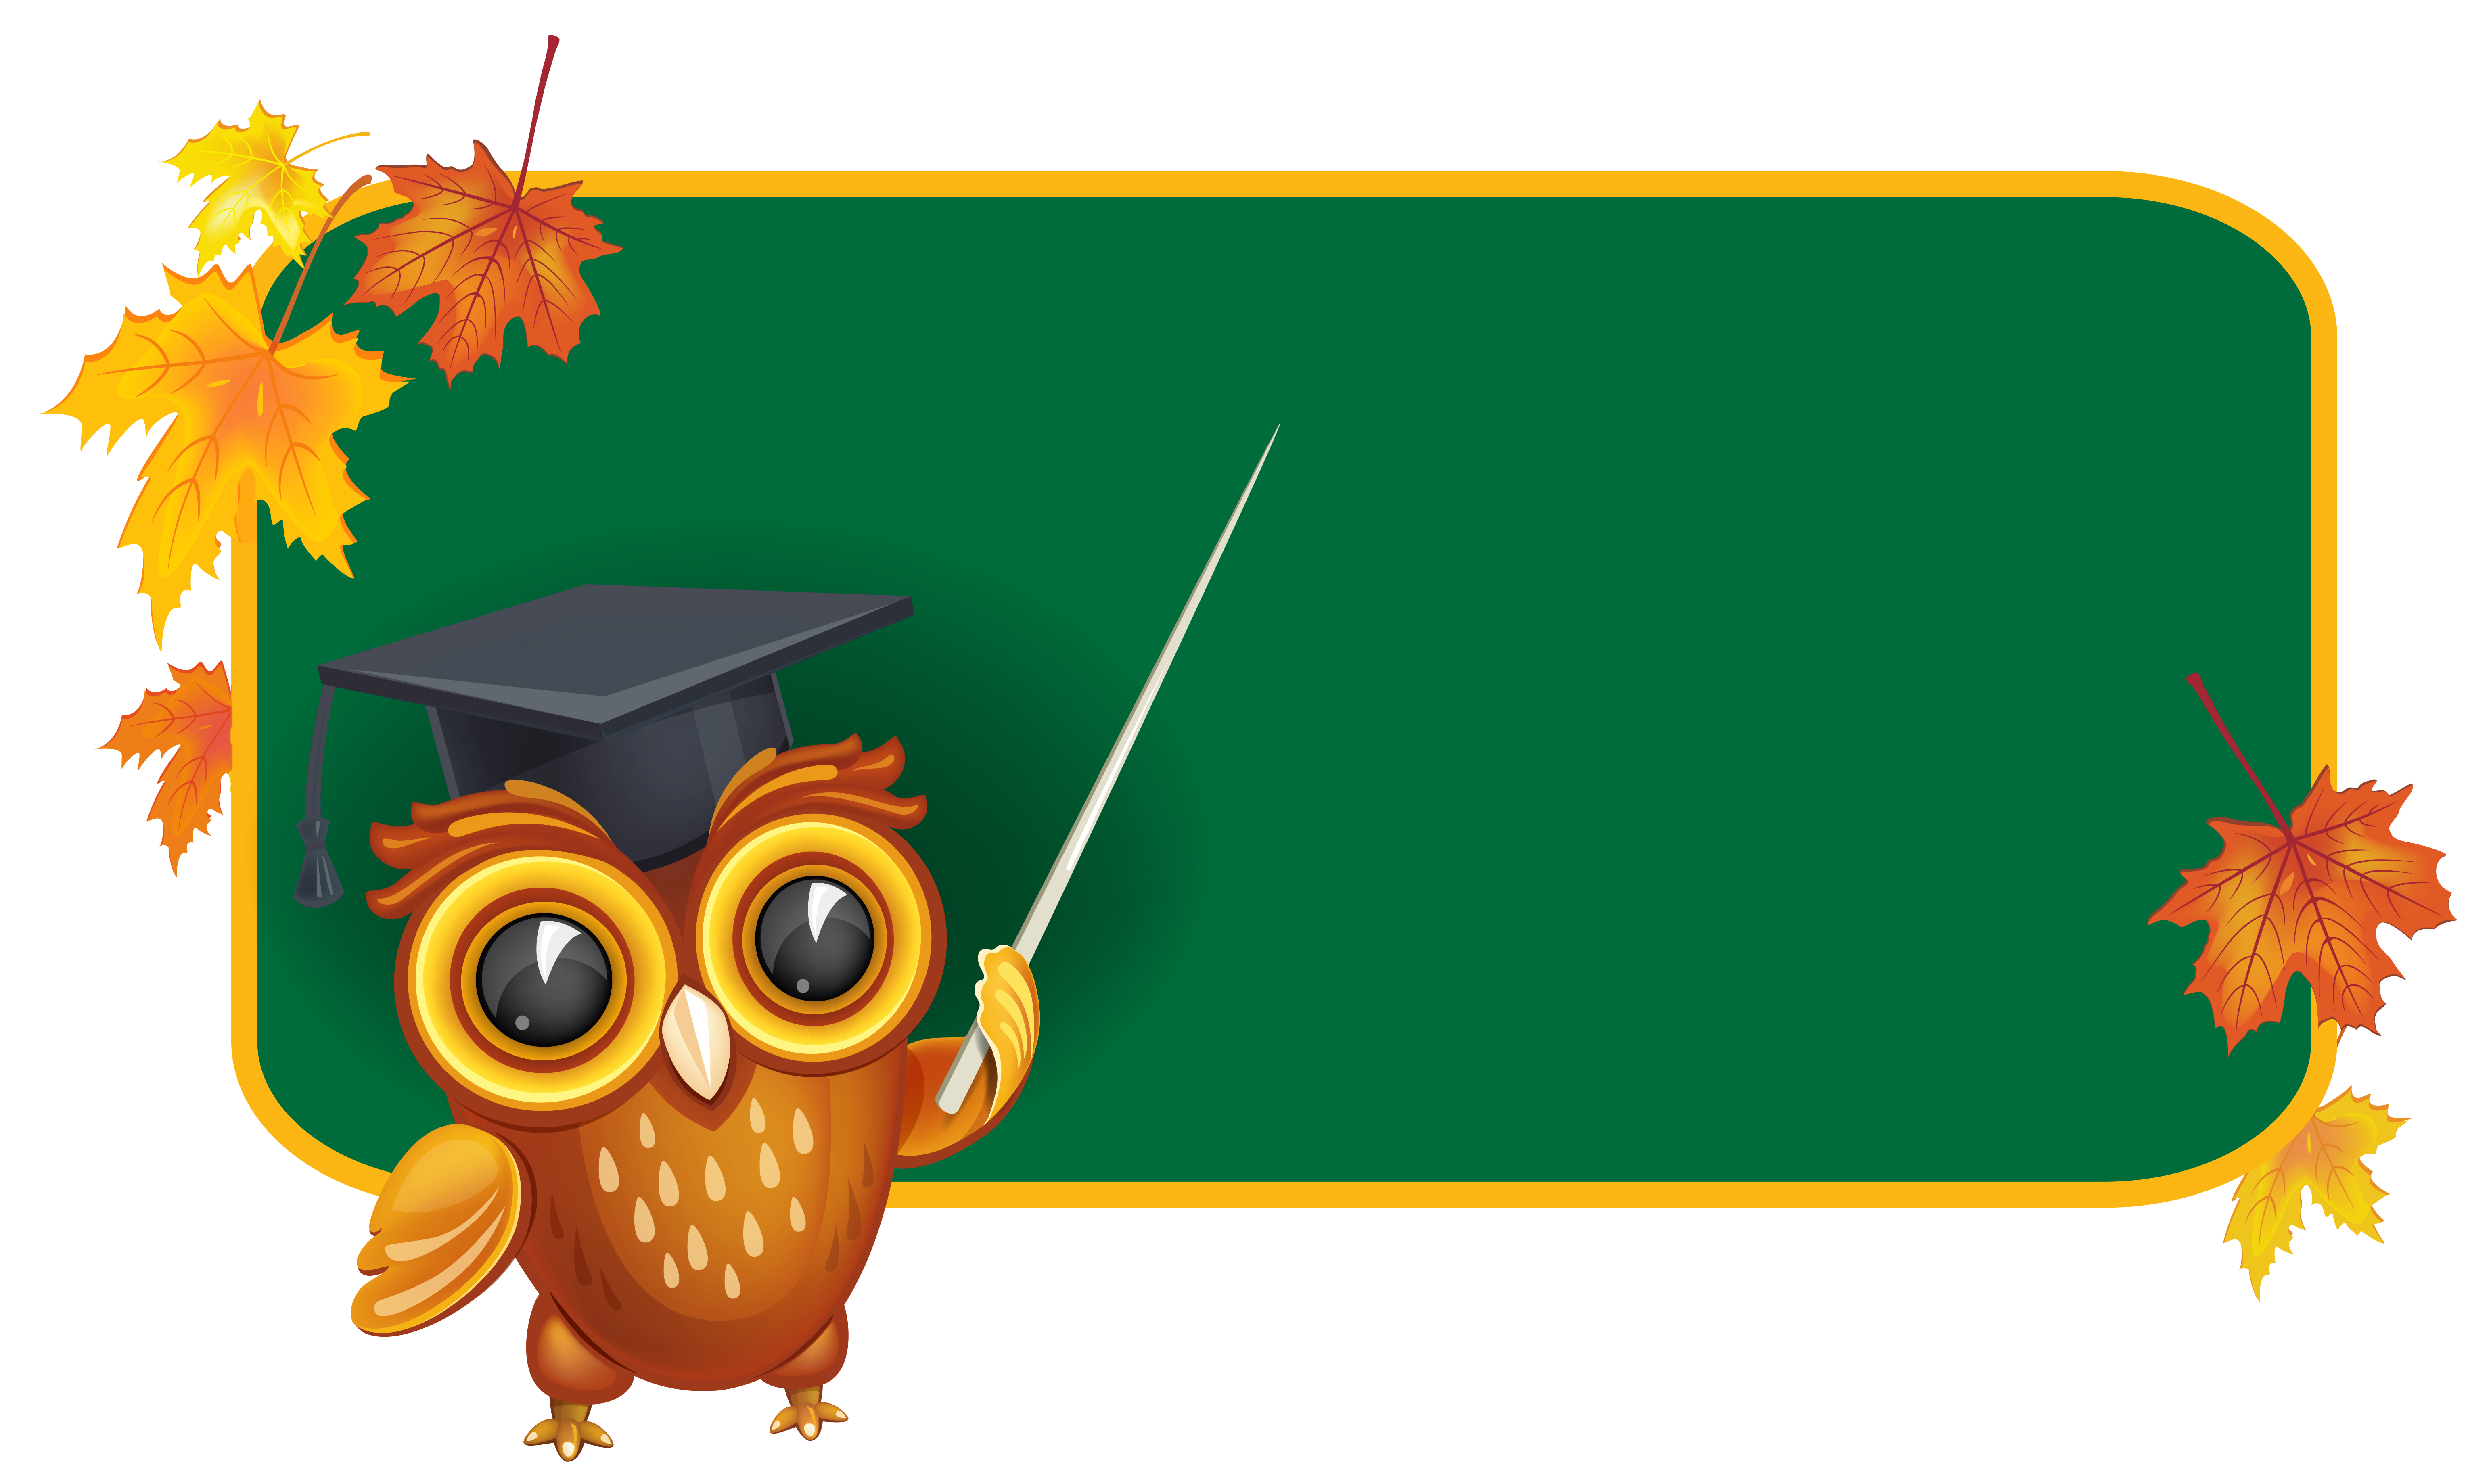 Owls clipart education. Owl with school board